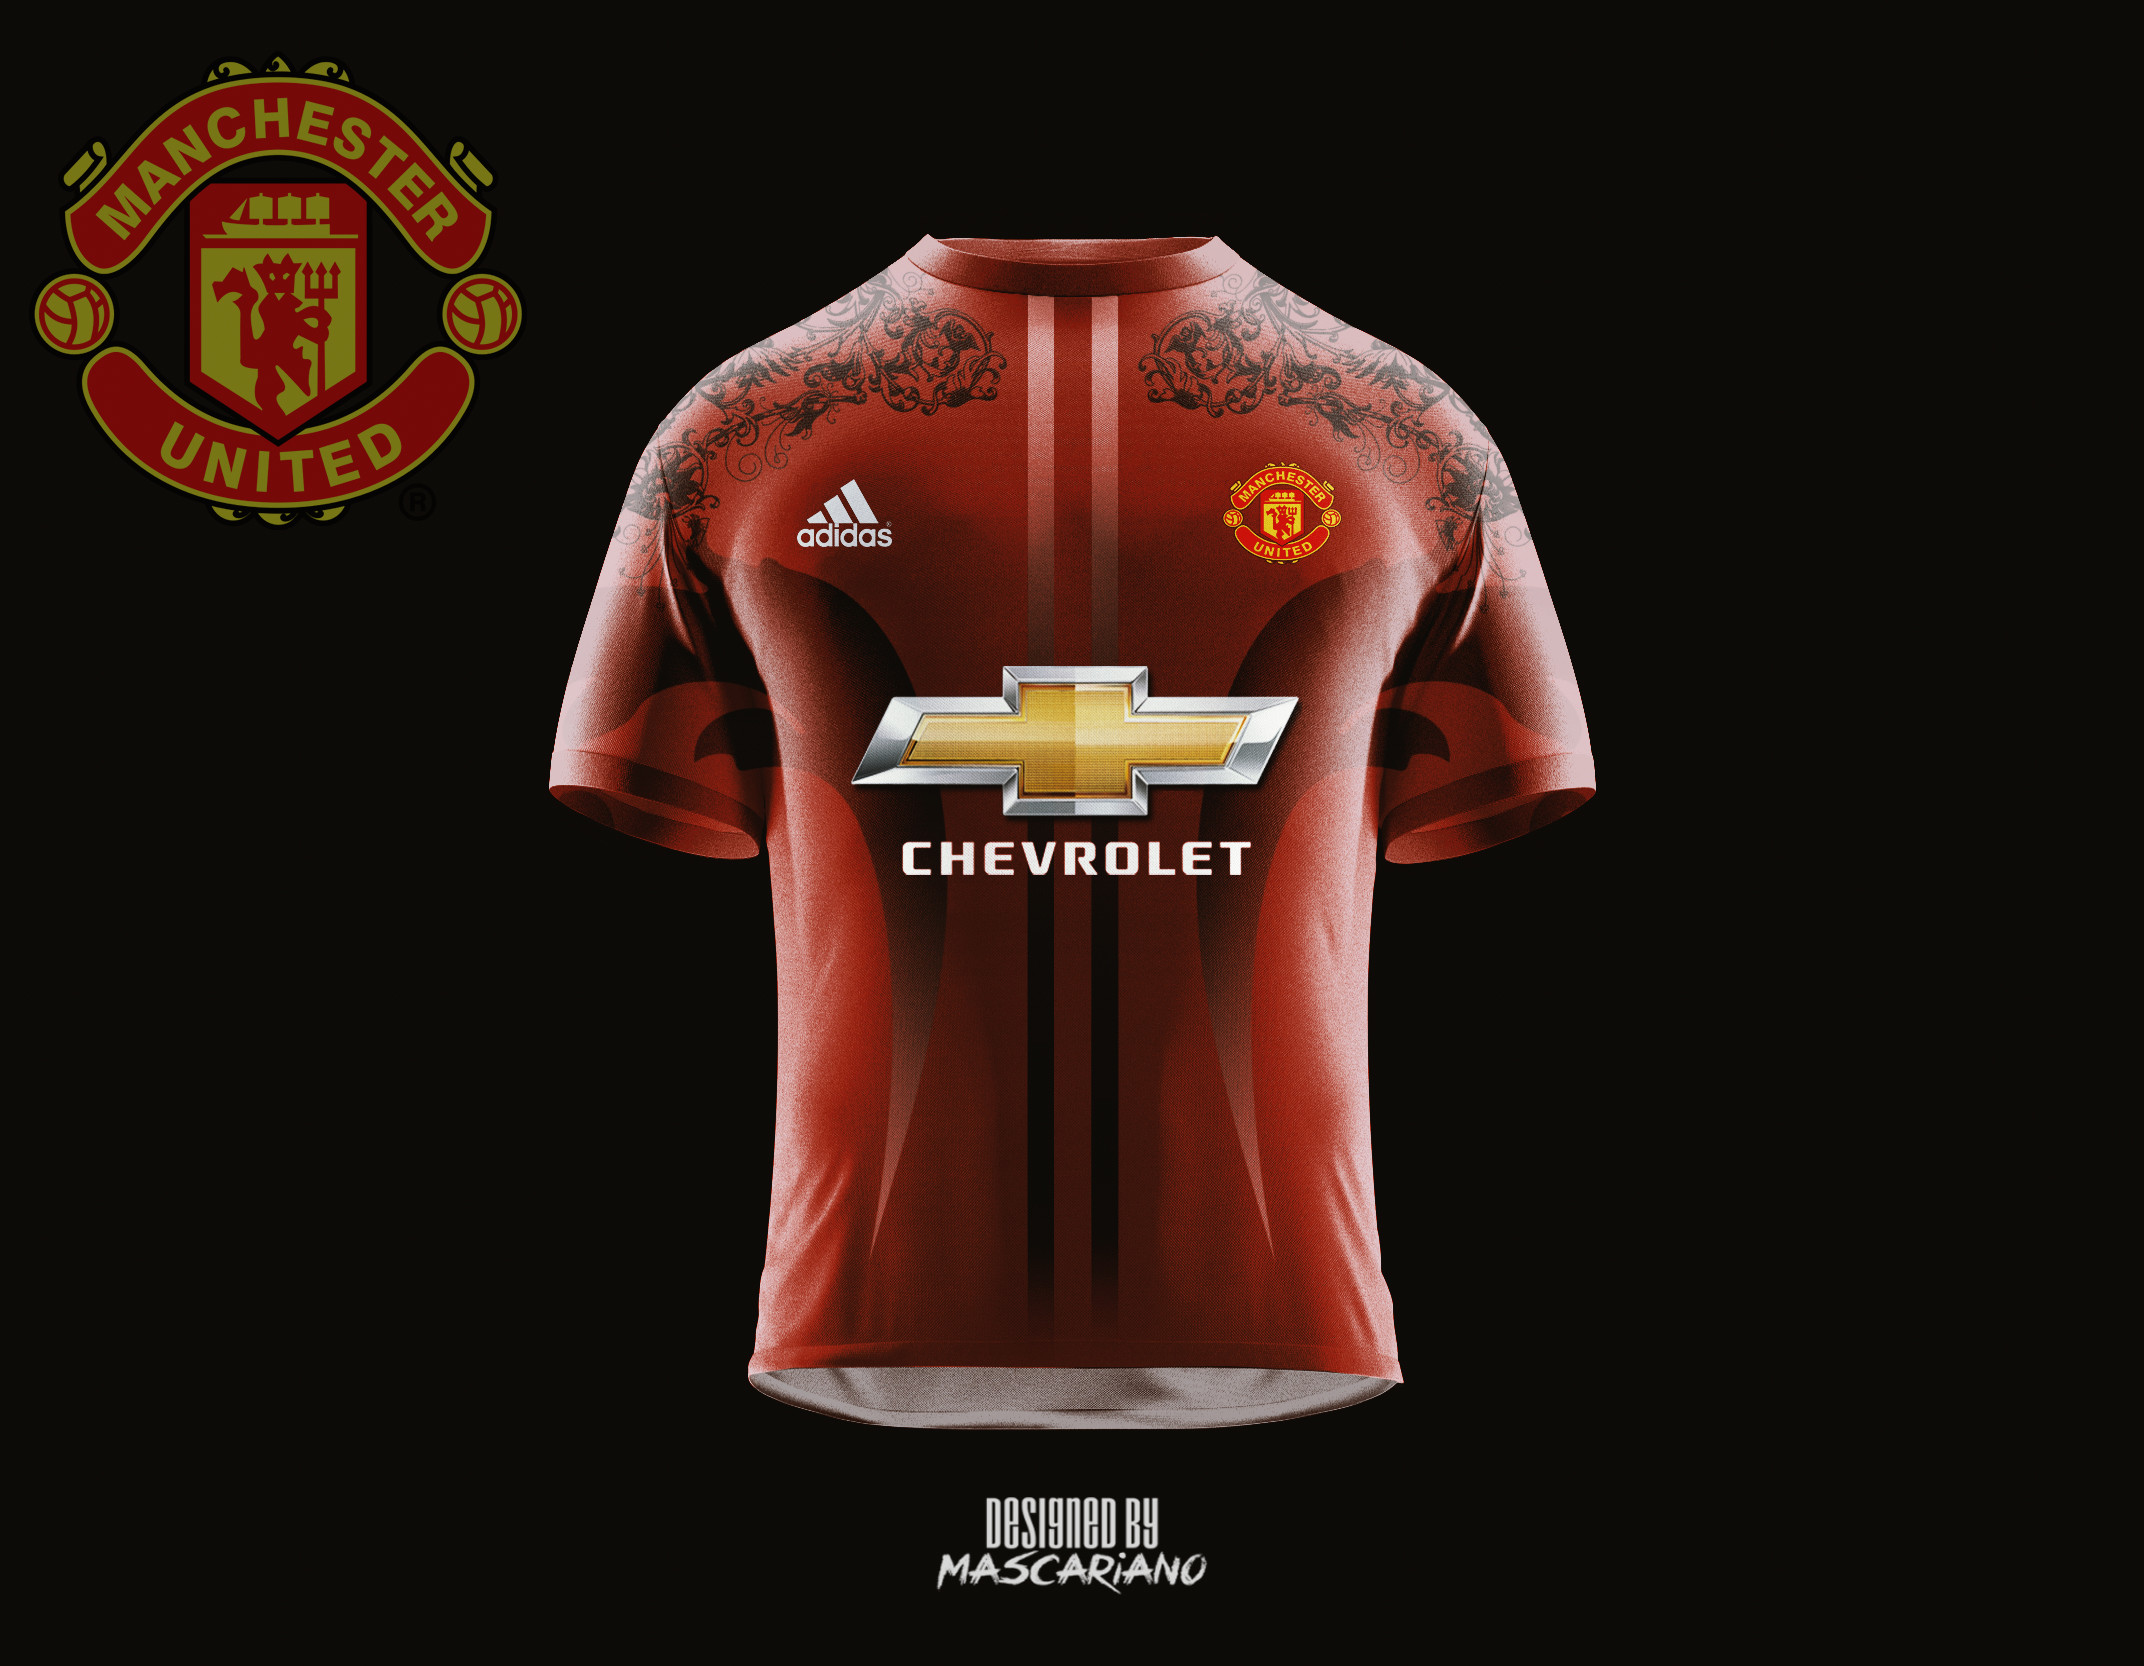 Man Utd Wallpapers 2018 68 Images